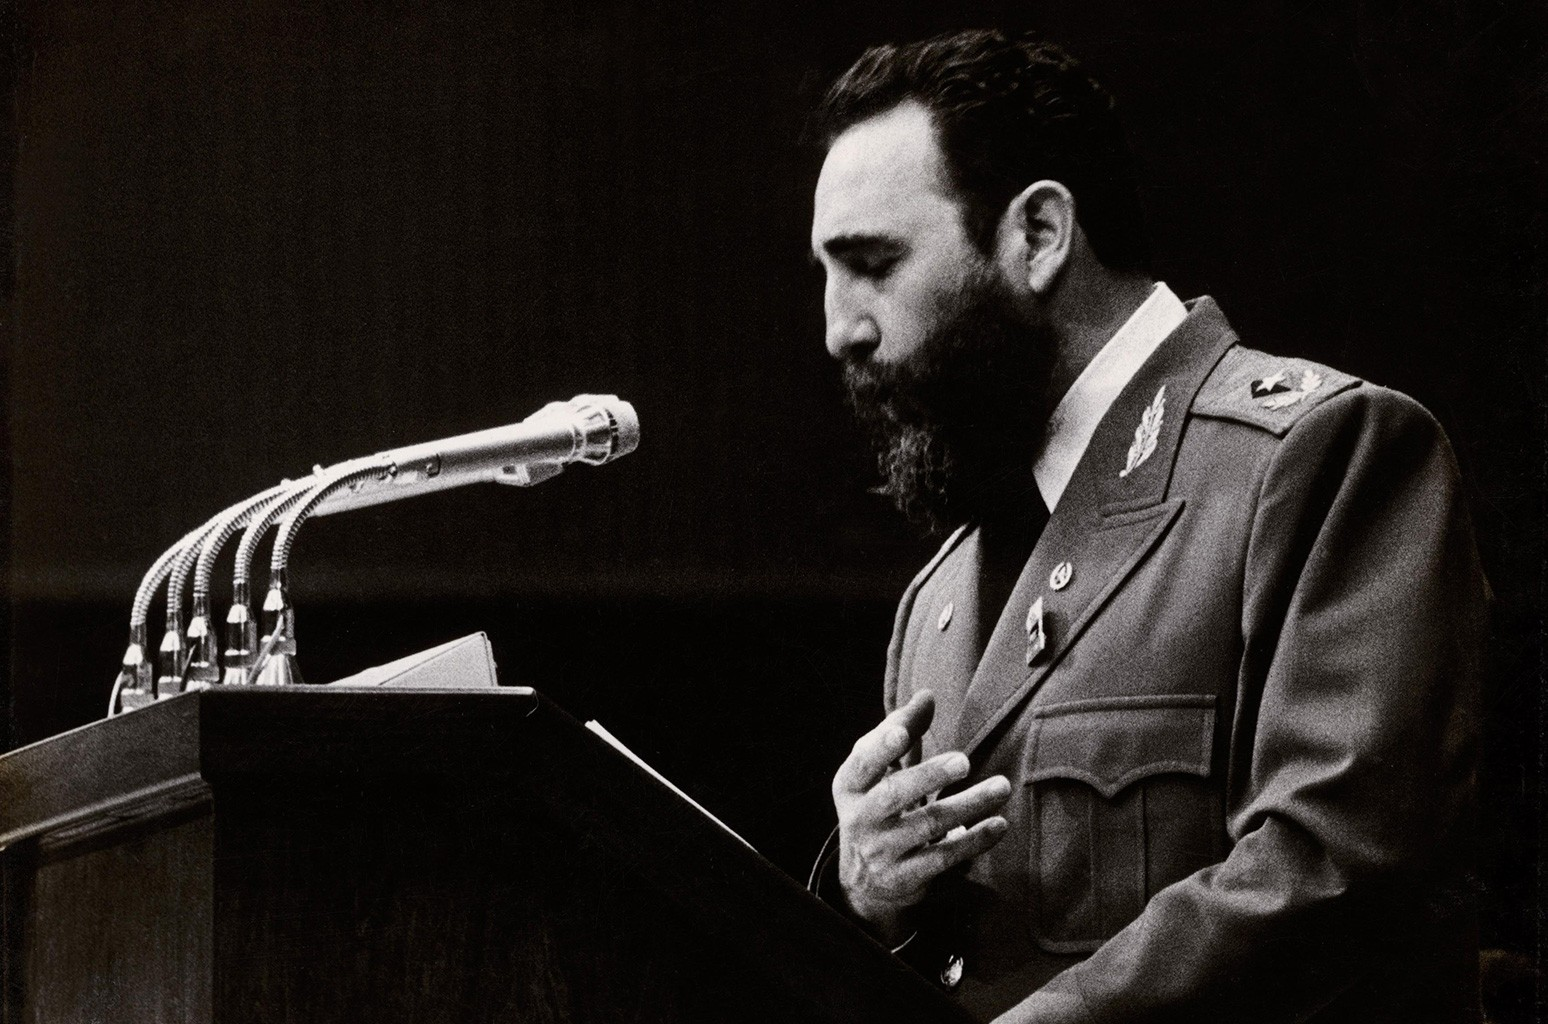 Fidel Castro photographed giving a speech around 1960.